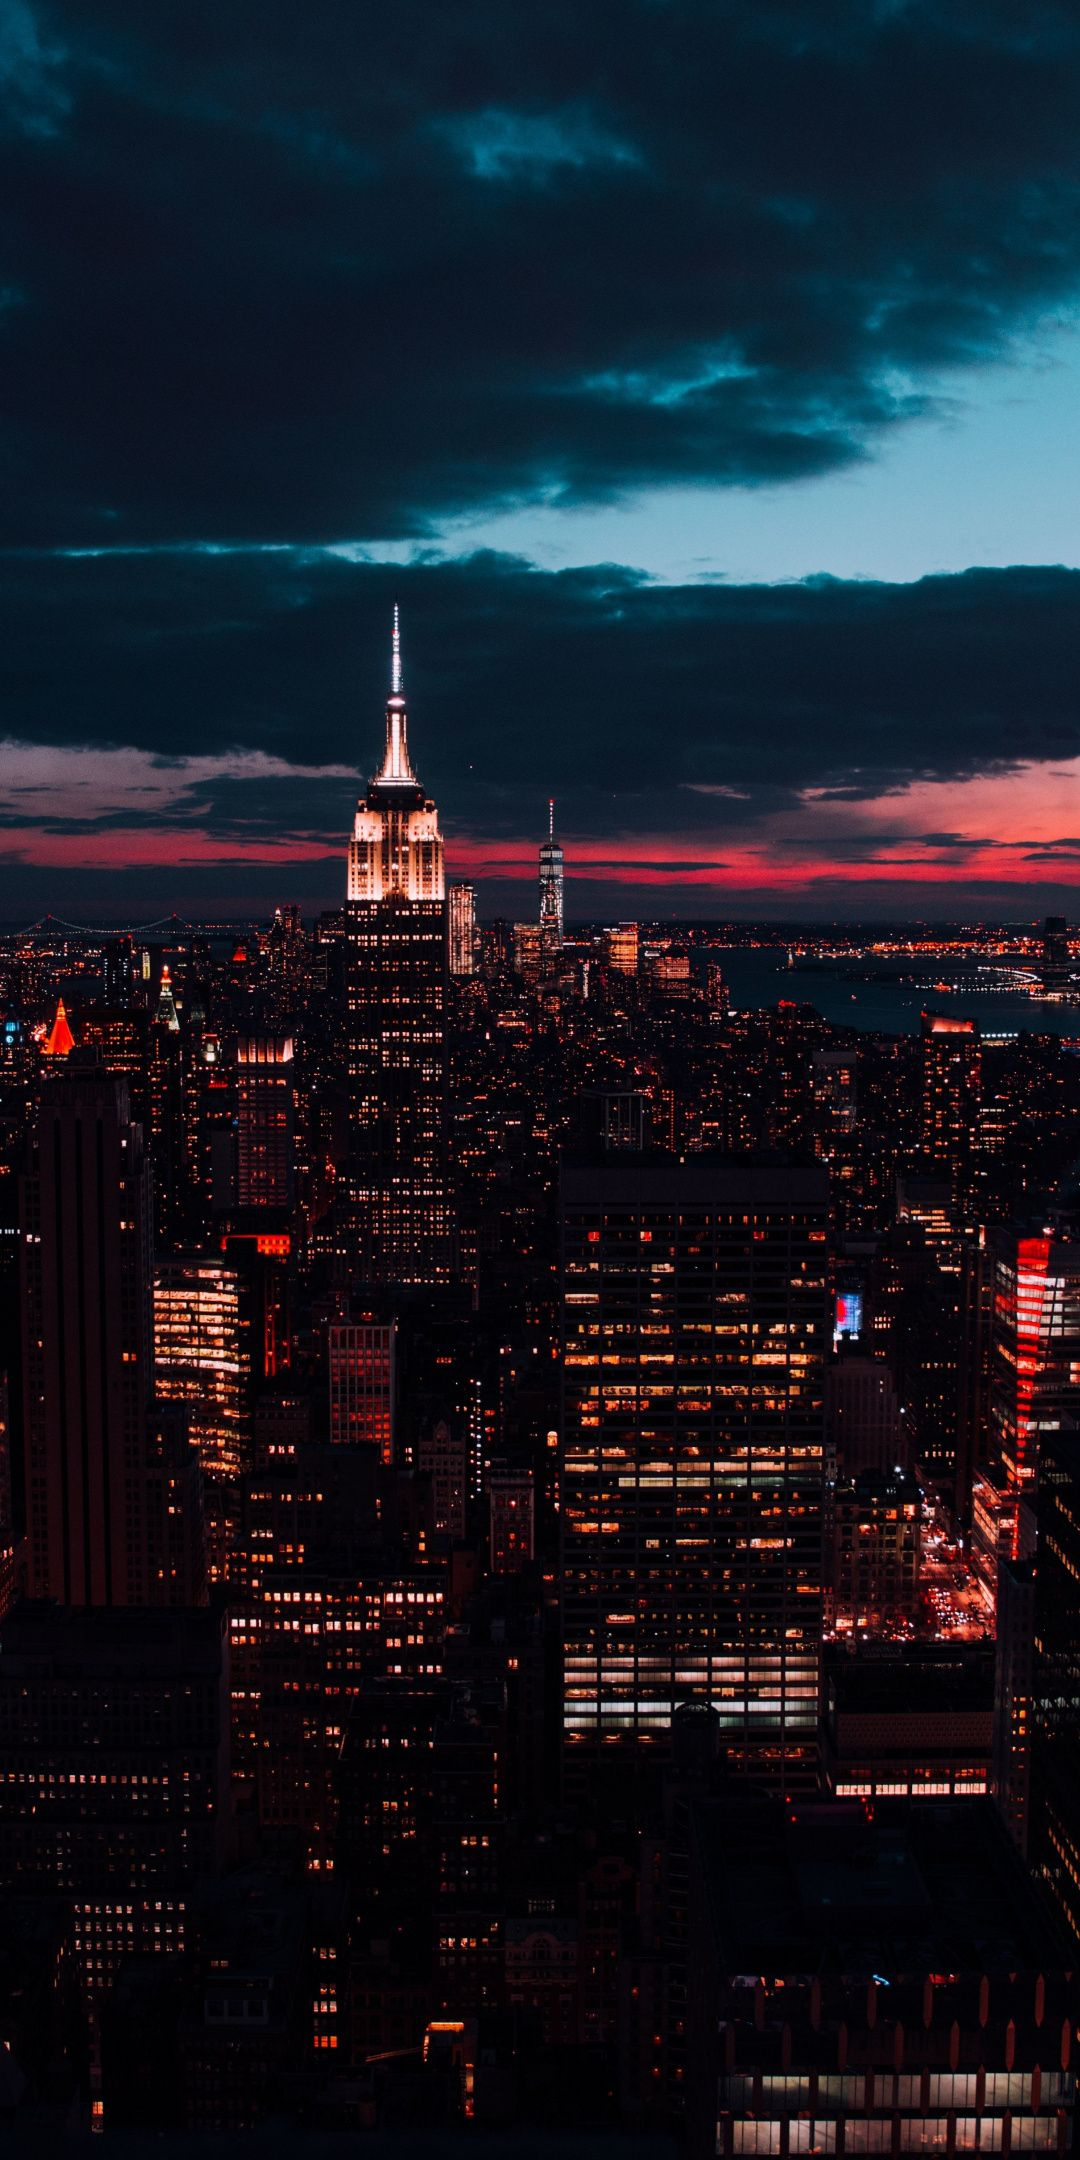 New York Buildings Night Cityscape 1080x2160 Wallpaper City Wallpaper New York Wallpaper City Aesthetic